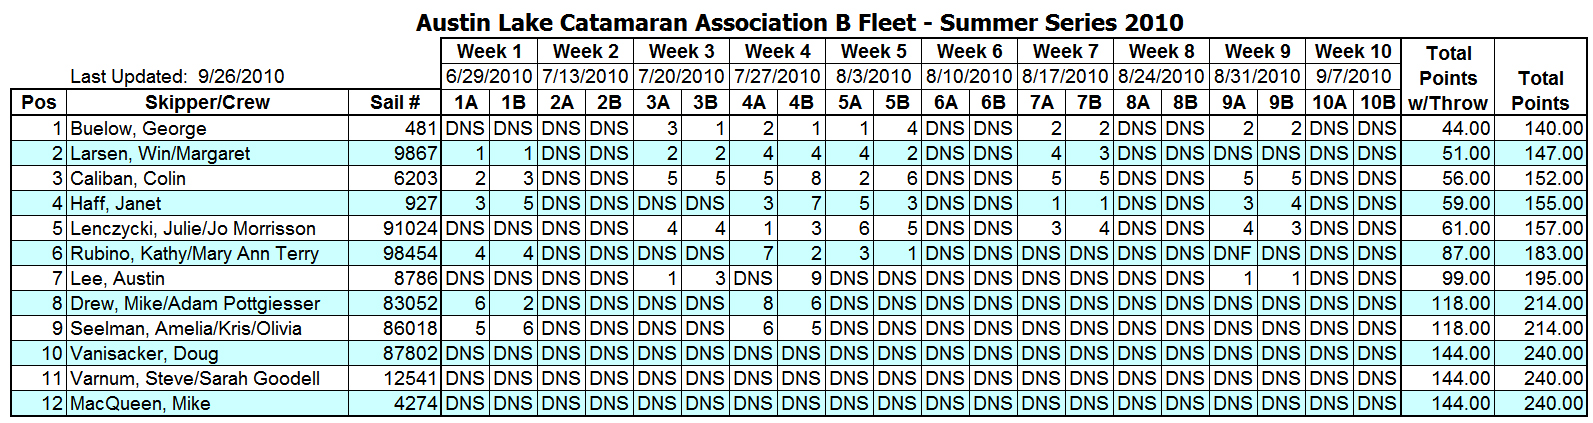 2010 Summer Portsmouth B Fleet Results